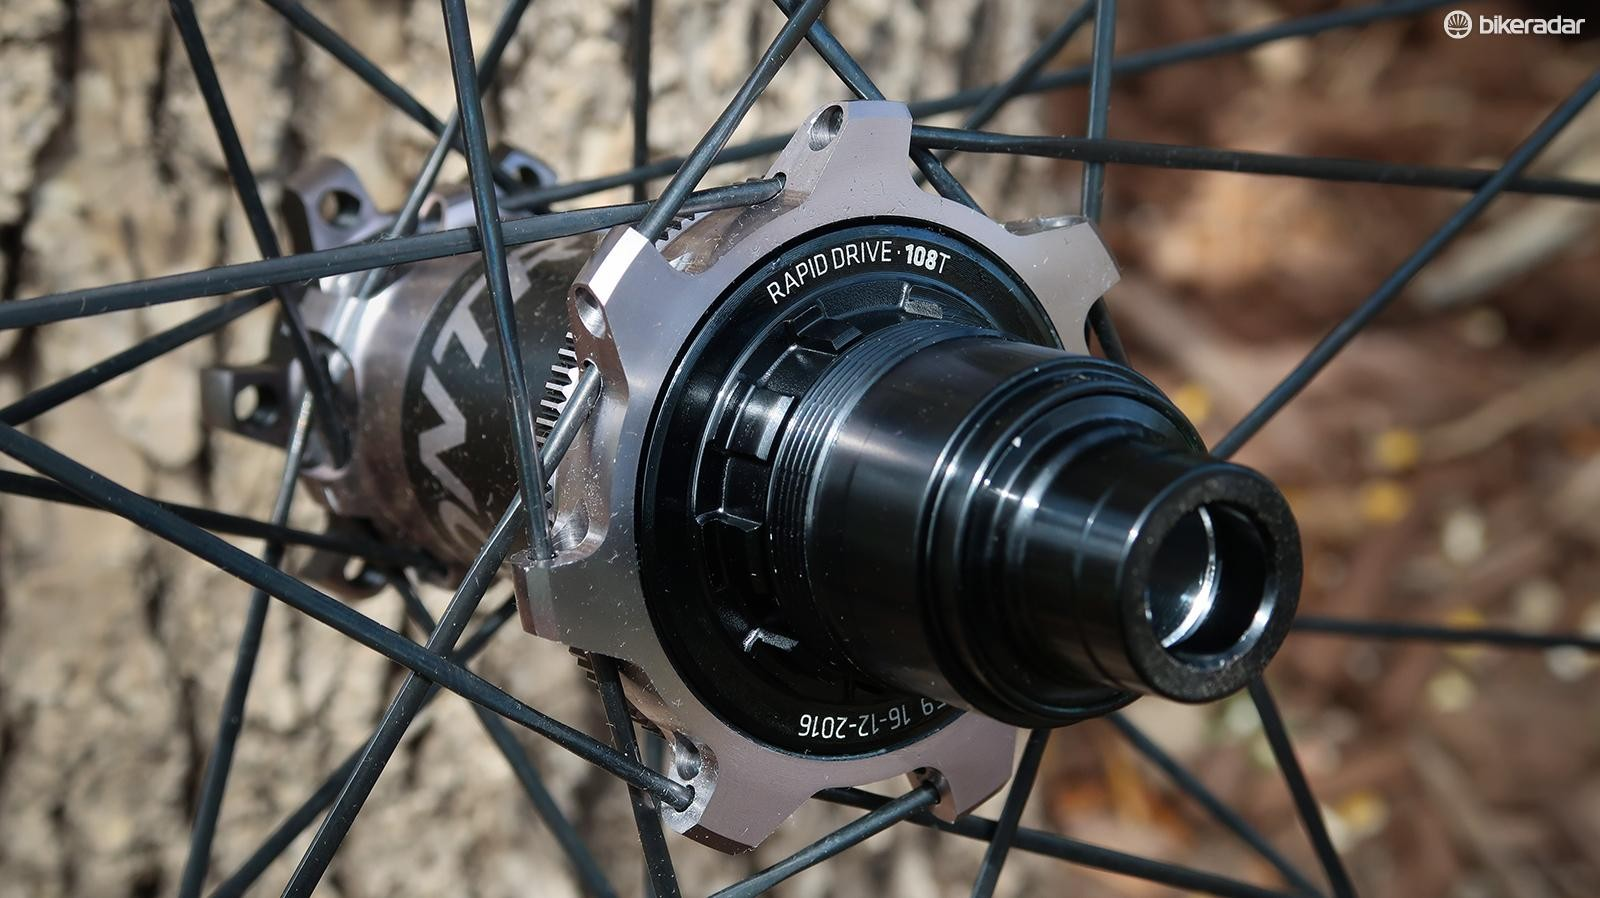 There are SRAM as well as Shimano freehub options